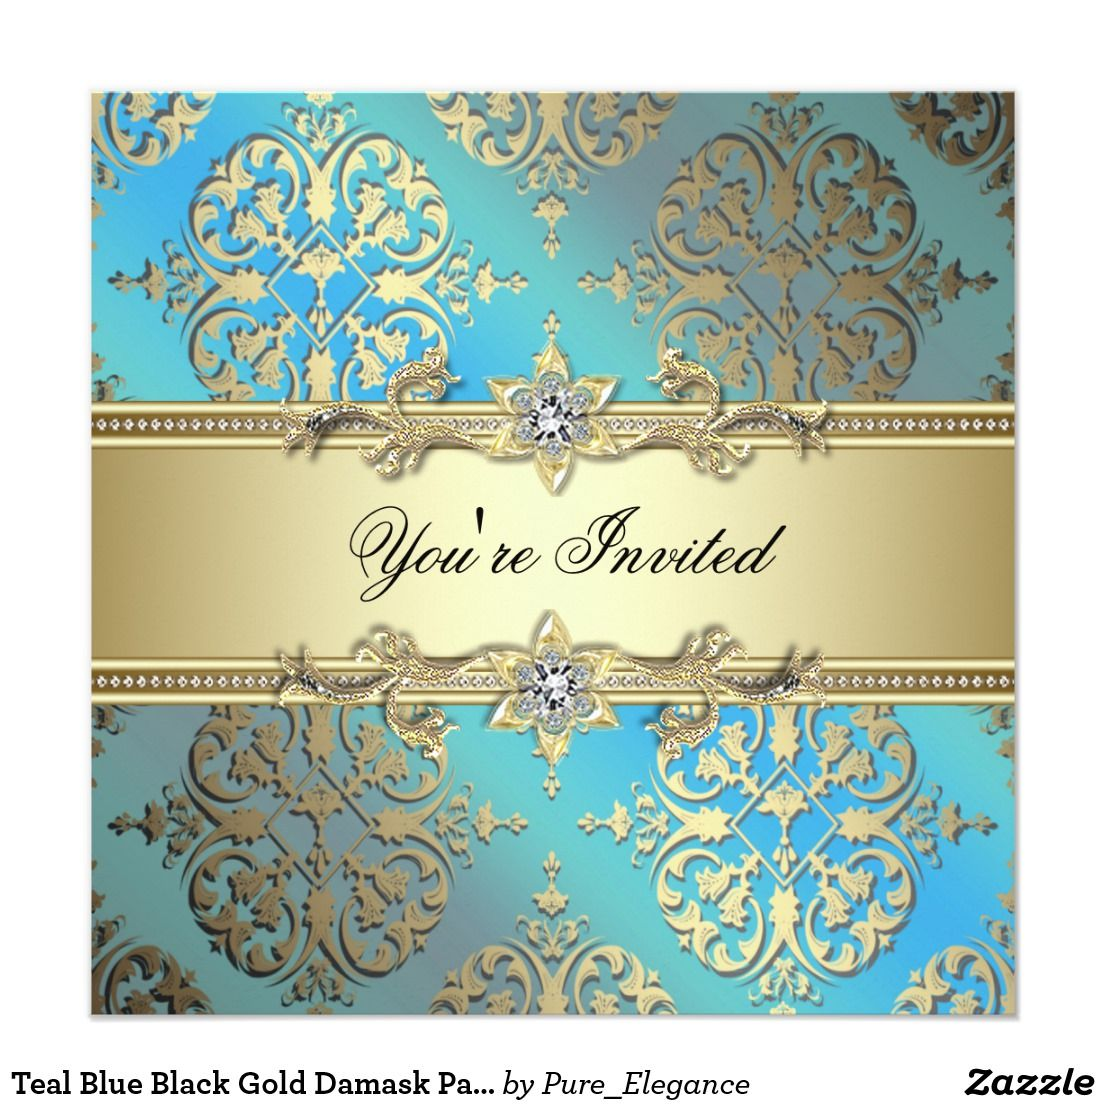 Teal Blue Black Gold Damask Party Invitation | Damask party, Party ...